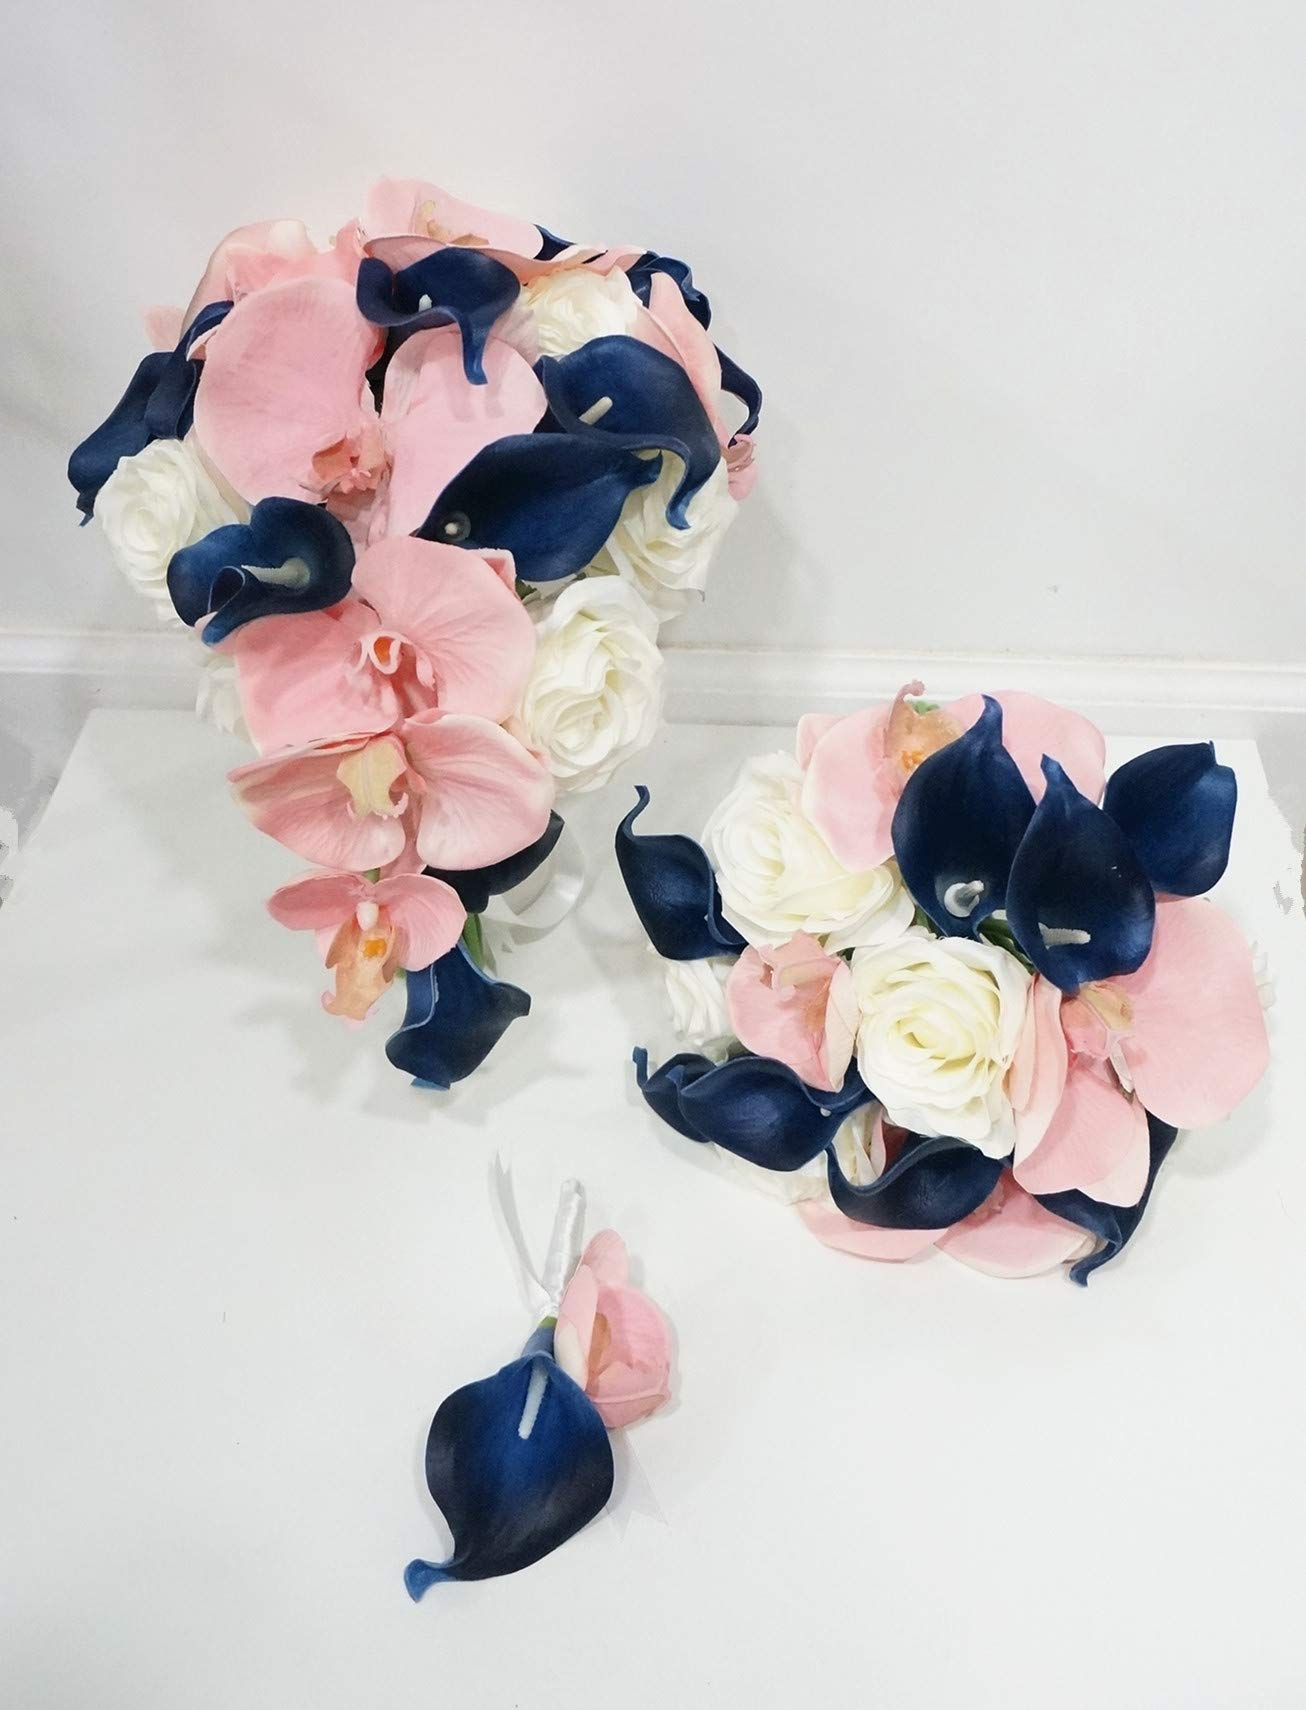 Sweet Home Deco Silk Phanaenopsis Orchid Rose Calla Lily Mixed Wedding Bridal Bridesmaid Bouquet Boutonniere Blush Pink/Navy Blue/White (Pink/Blue/White-Cascading Bouquet) by Sweet Home Deco